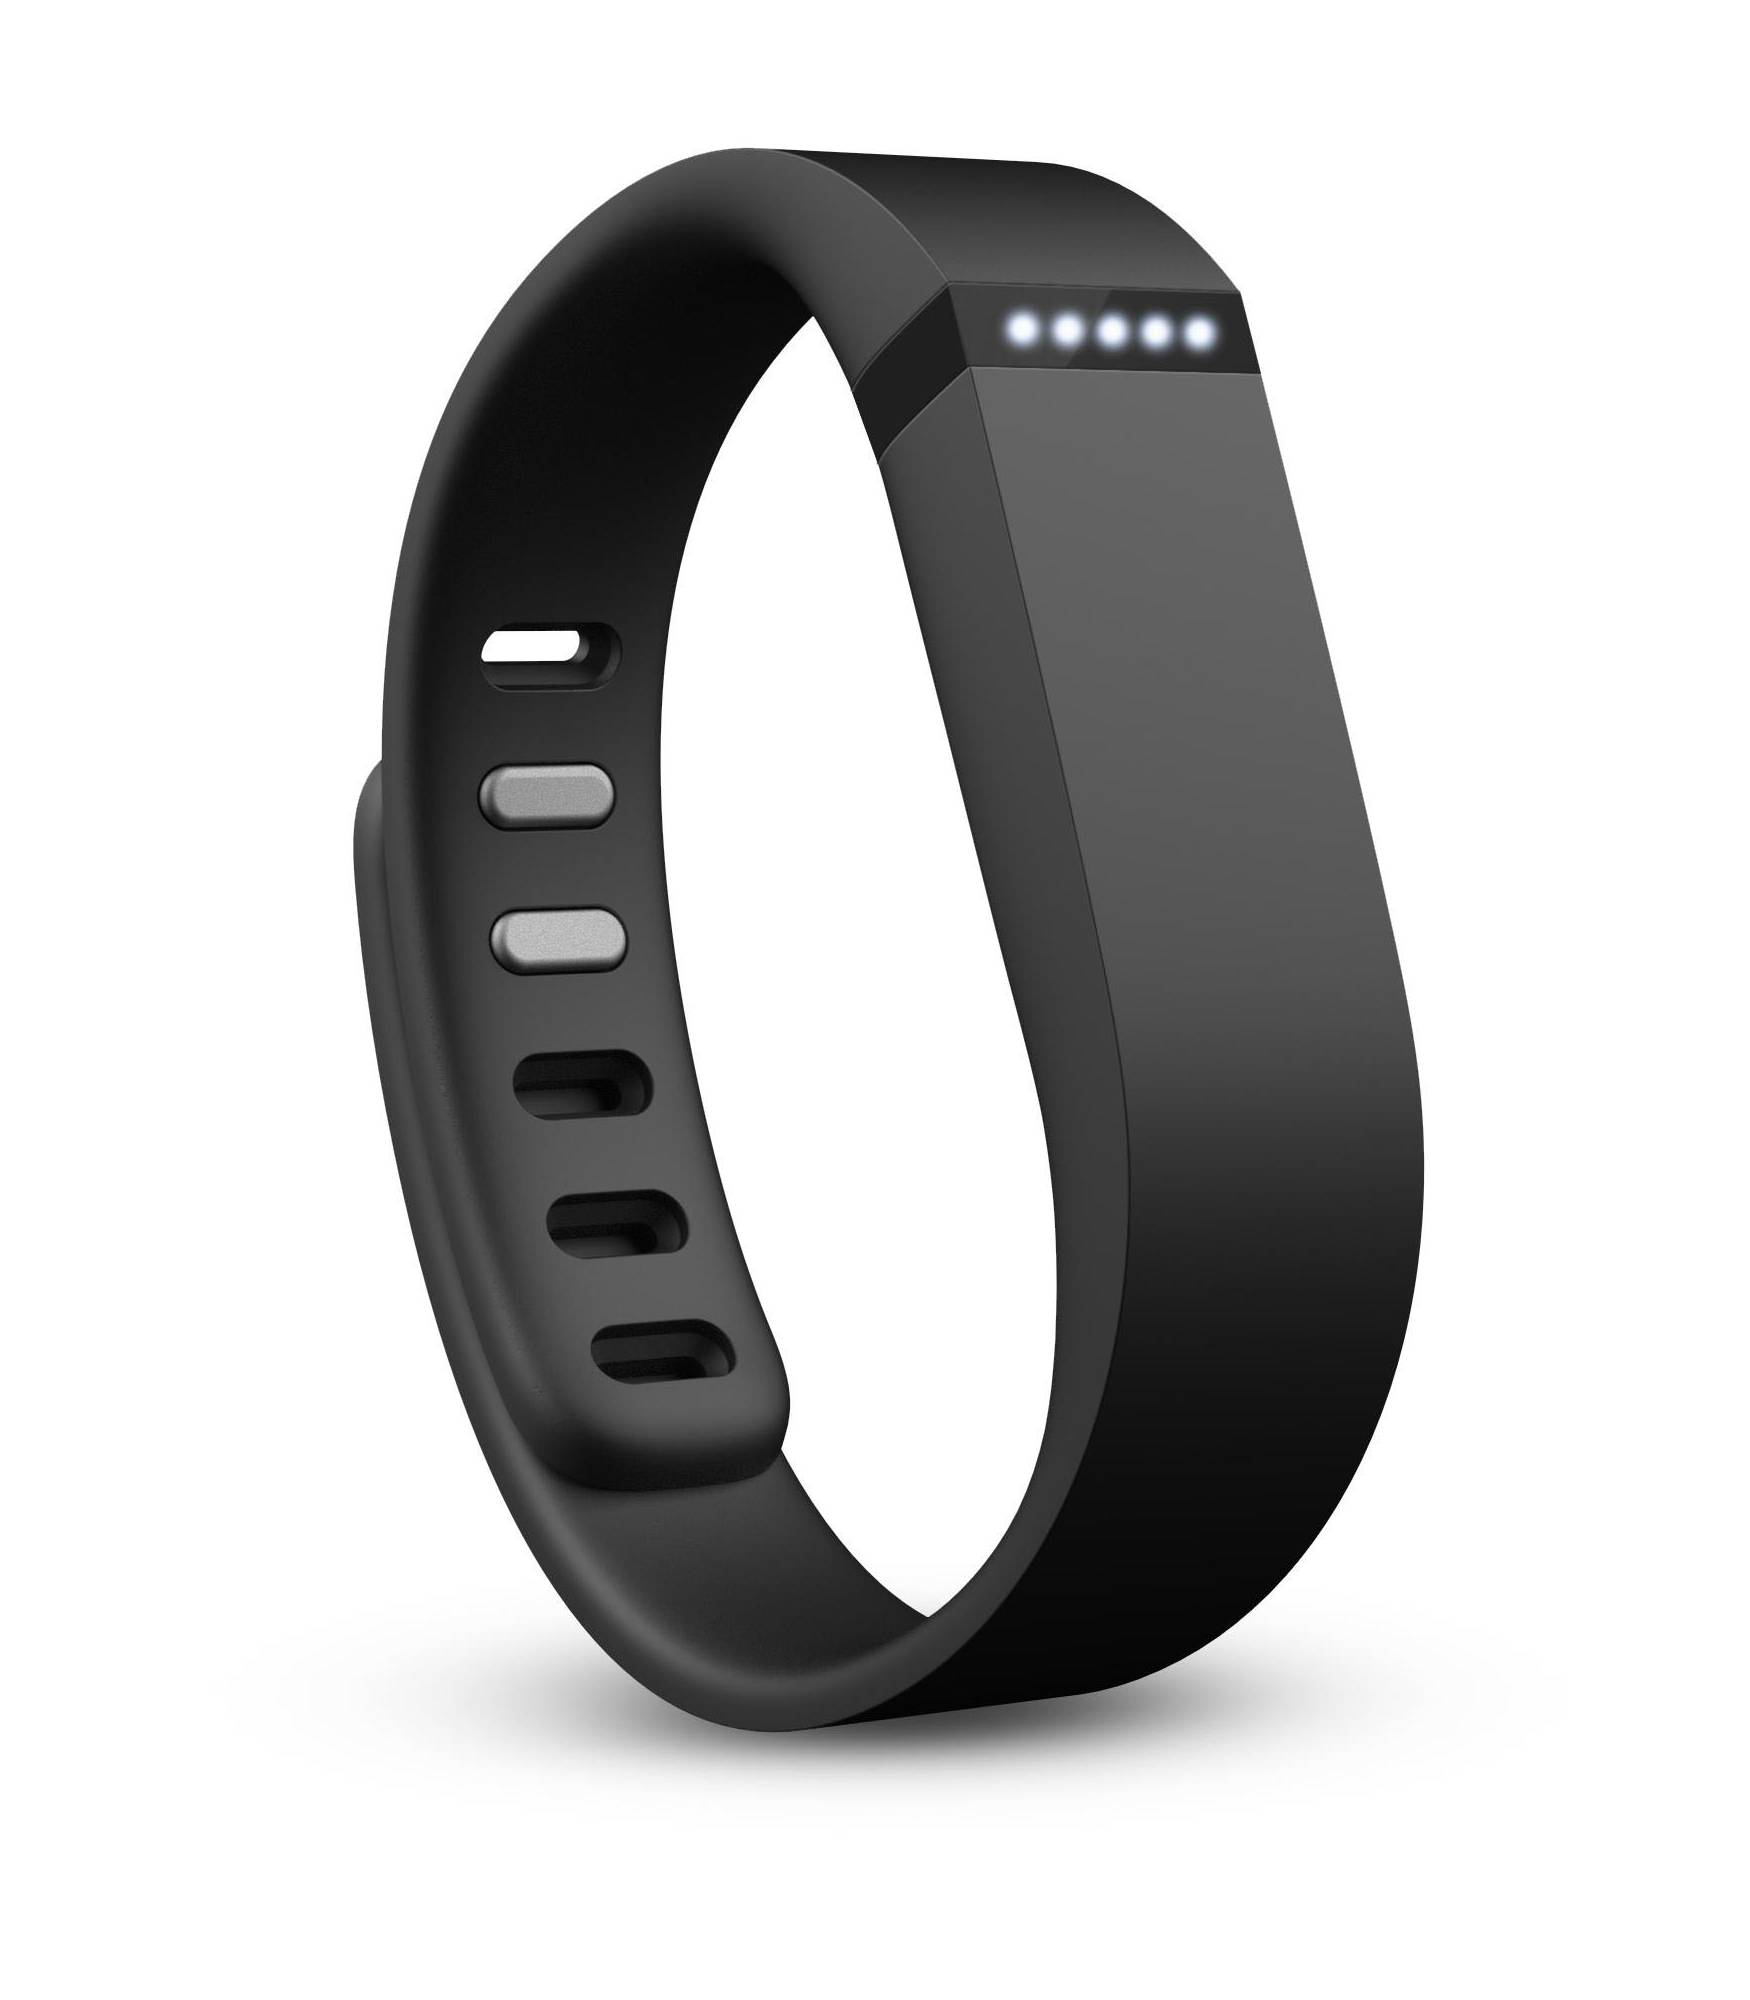 The Fitbit Flex monitors your activity and sleep, sending data to your smart phone.